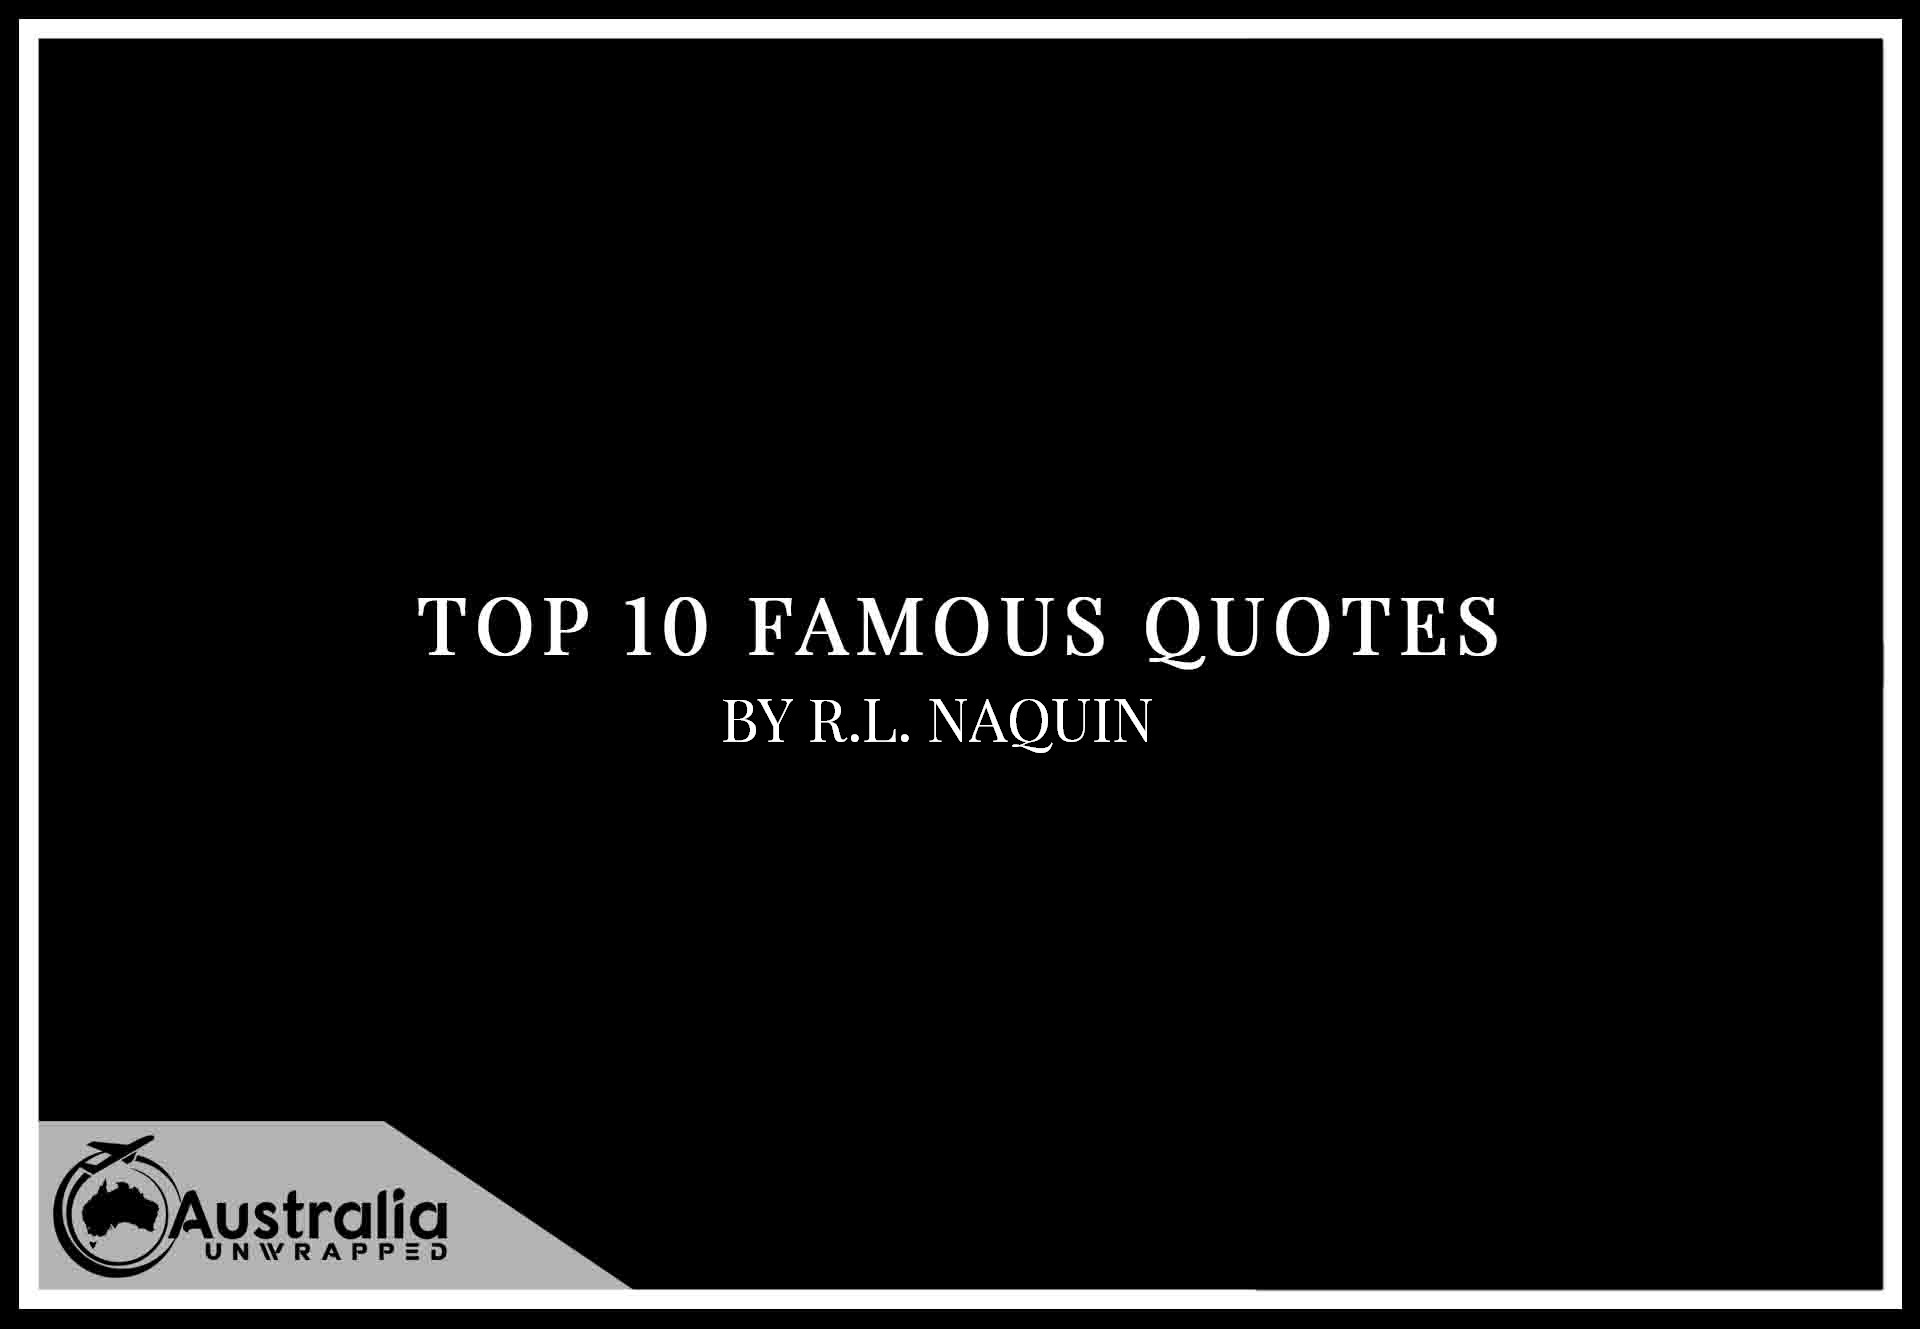 Top 10 Famous Quotes by Author R.L. Naquin